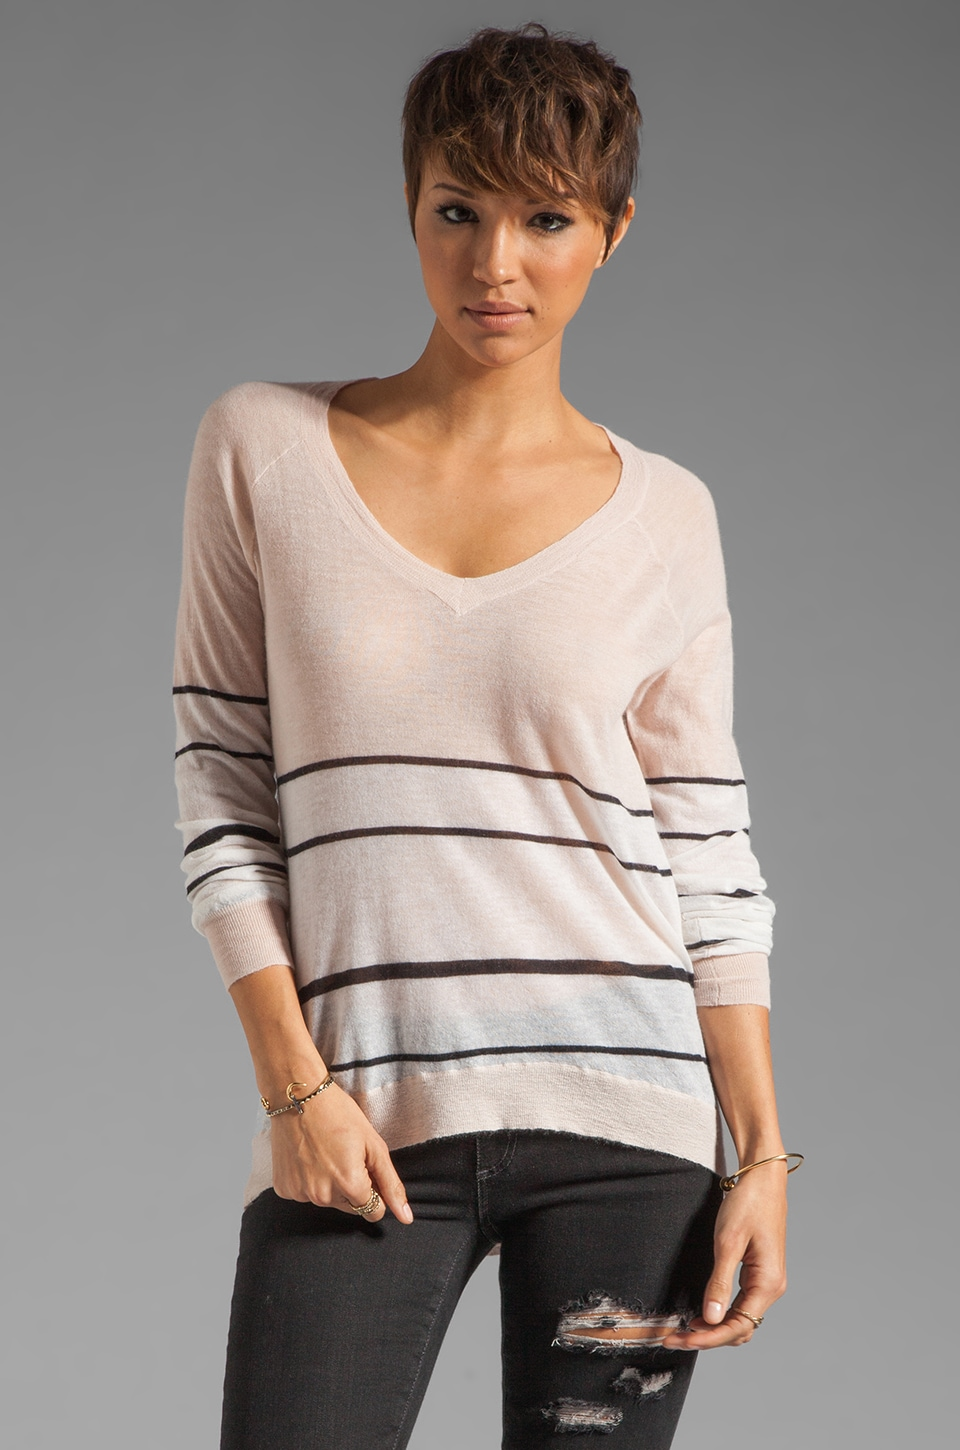 Enza Costa Cashmere Colorblock V in Pink Tint/Stripe